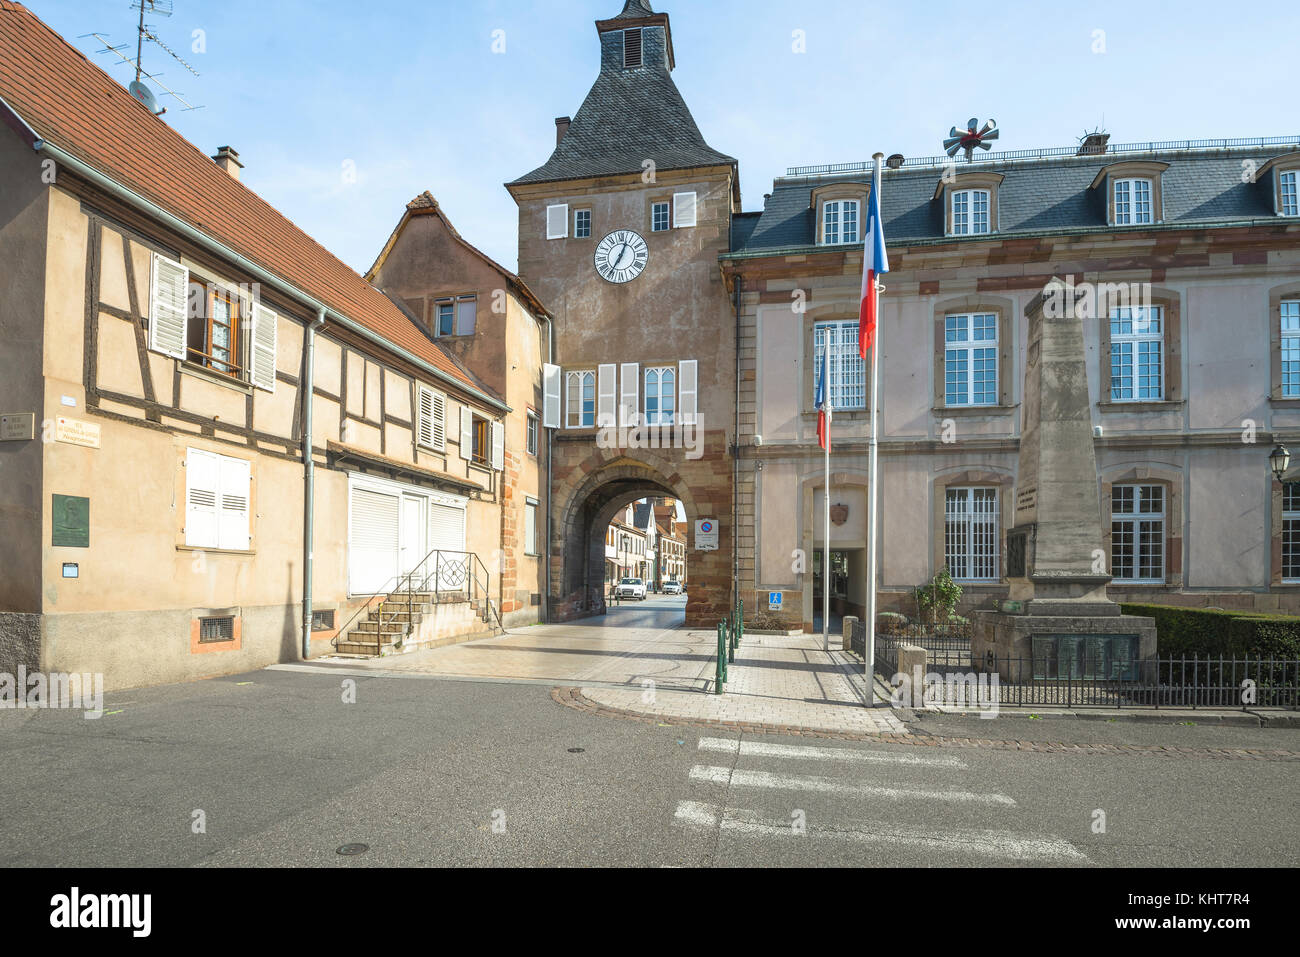 square with clock tower, flags, town gate and town hall of the village Rosheim, Alsace, France - Stock Image